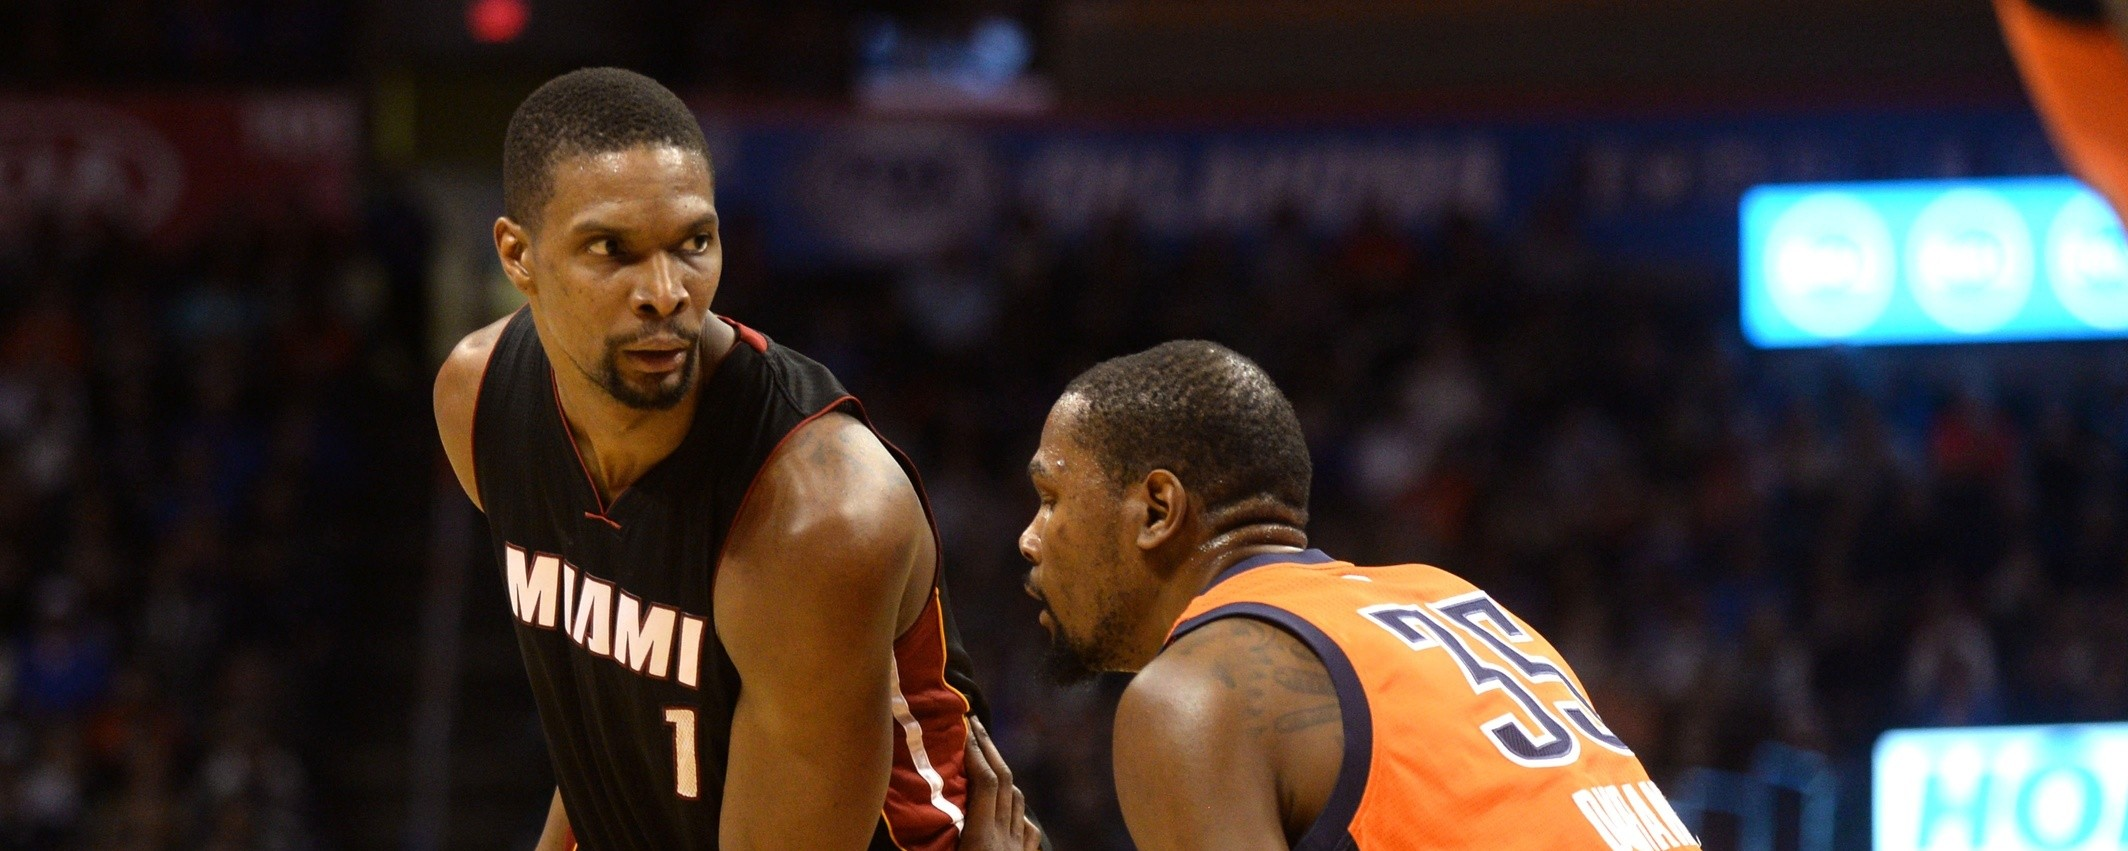 A Year After Nearly Losing It All, Chris Bosh Is All the Way Back